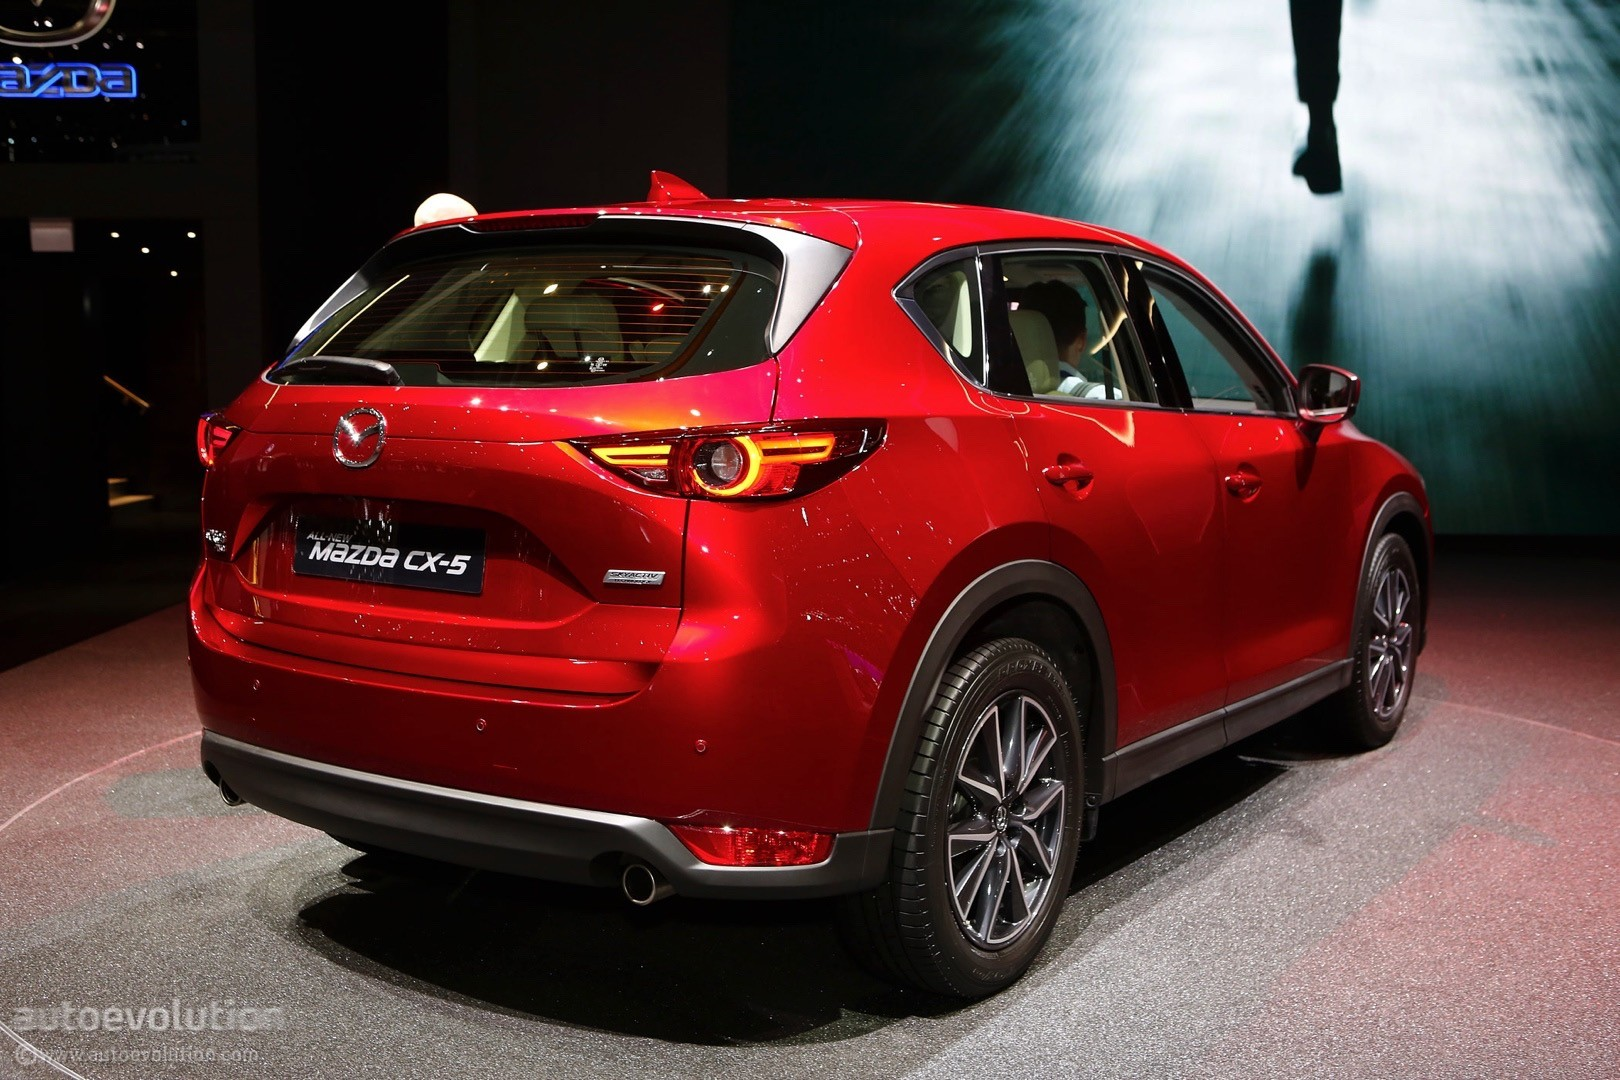 mazda cx 5 seven seat variant could go on sale in japan. Black Bedroom Furniture Sets. Home Design Ideas